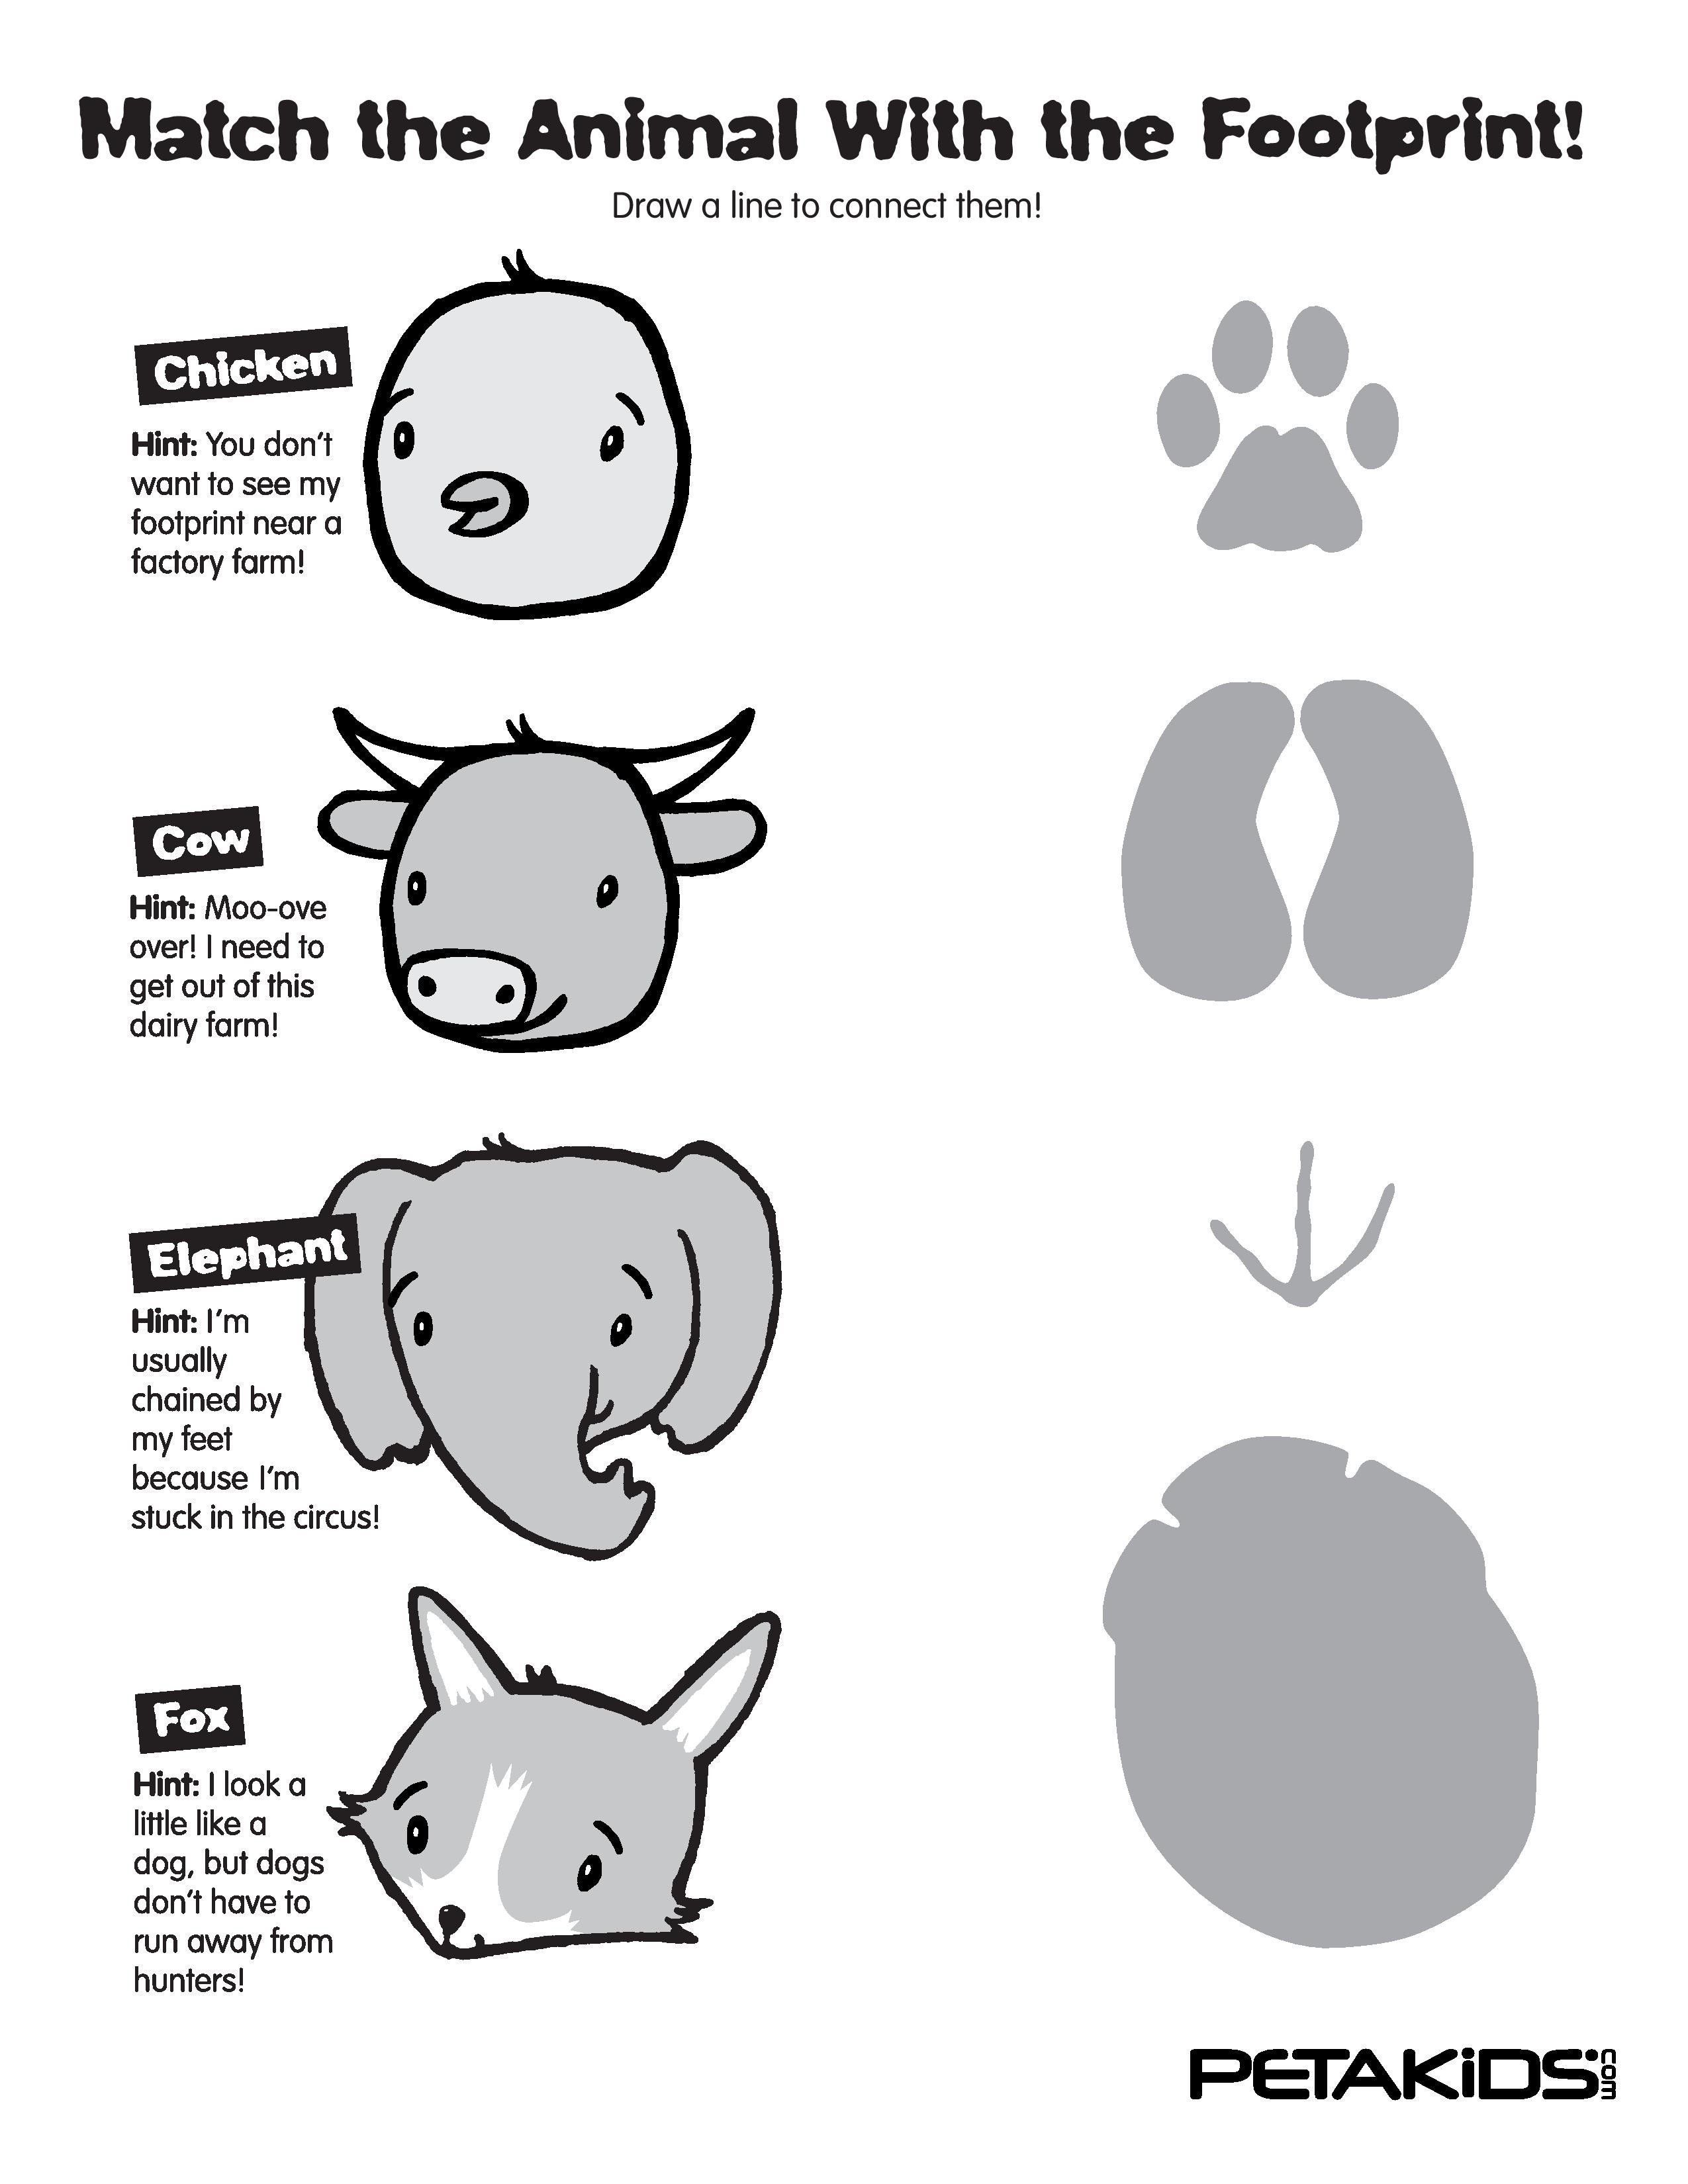 Pin On Coloriages Colorings In 2021 Animal Footprints Zoo Animal Coloring Pages Coloring Pages